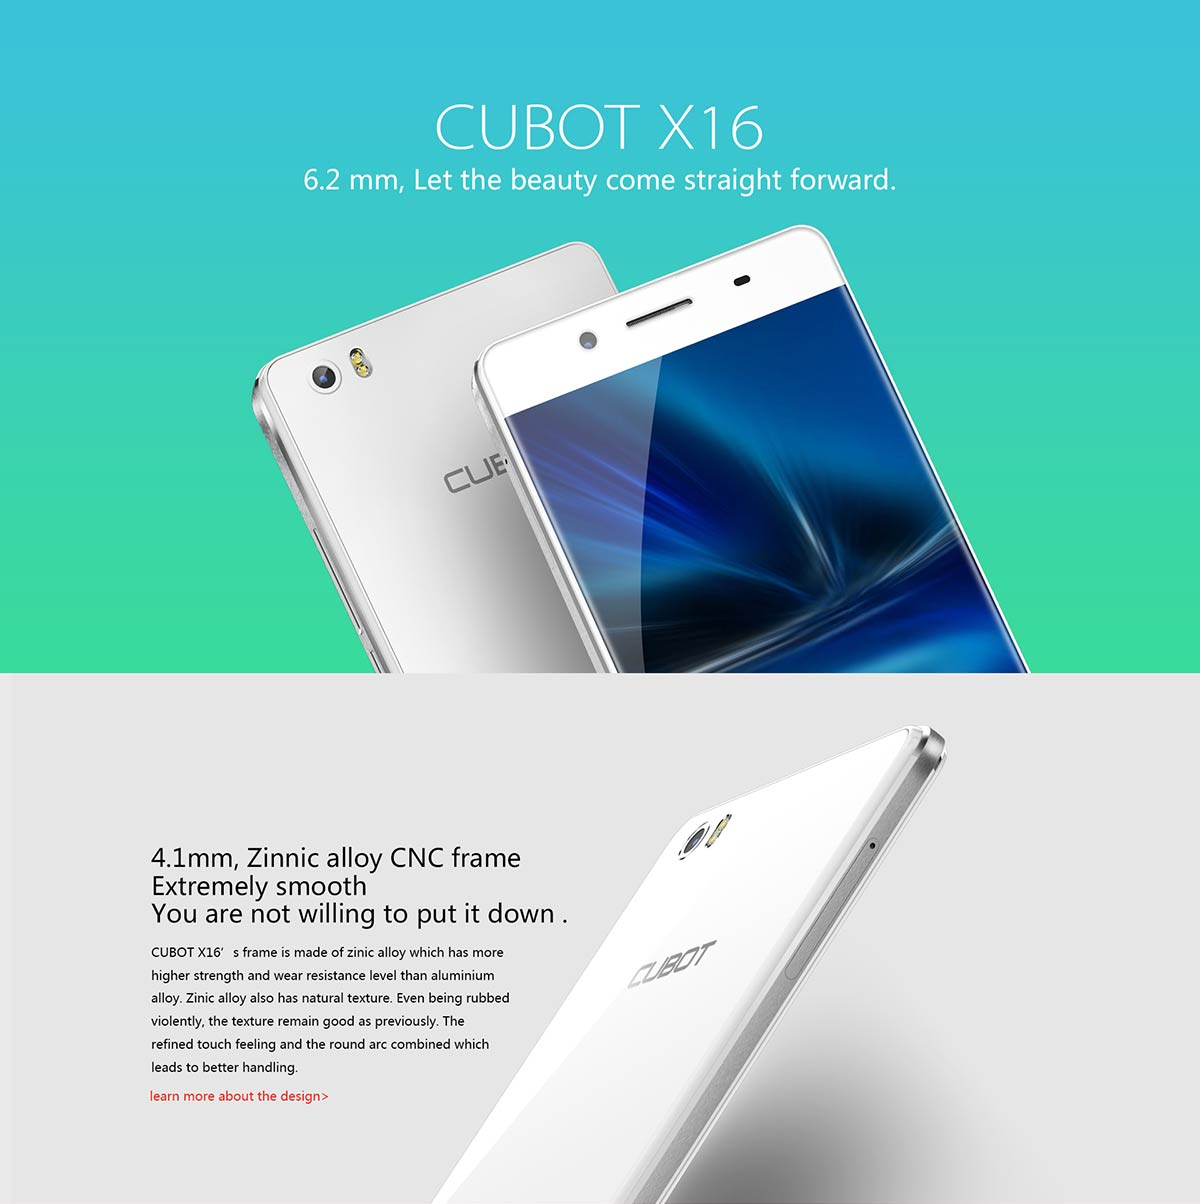 Angebot, Testbericht, Cubot, China Smartphone, China Smartphones, Benchmark Test, Cubot X16,